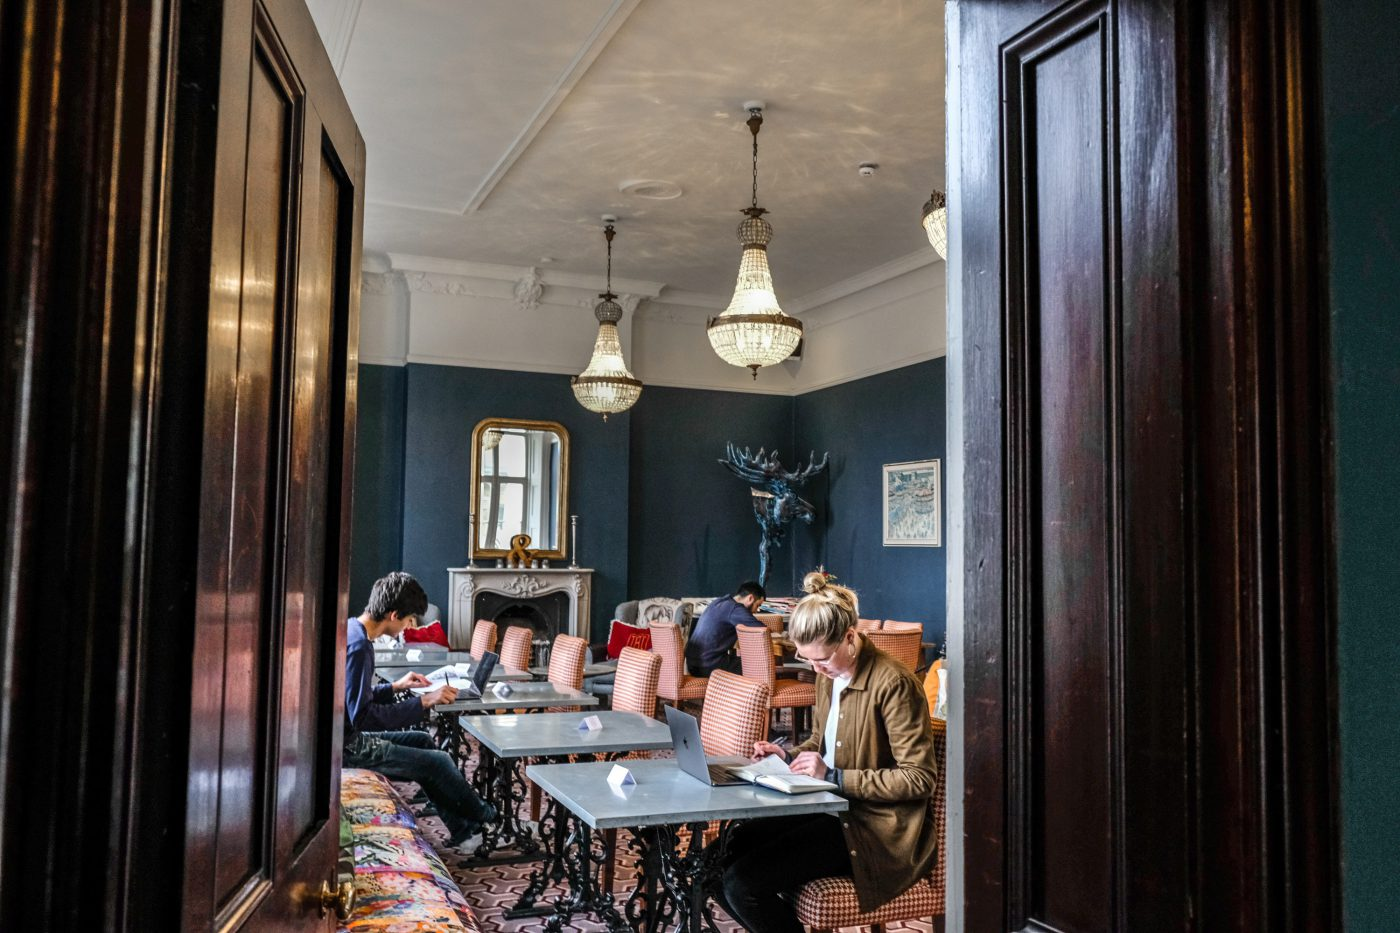 Restaurant Furniture For Less Startup Turns London S Empty Restaurant Tables Into Co Working Desks